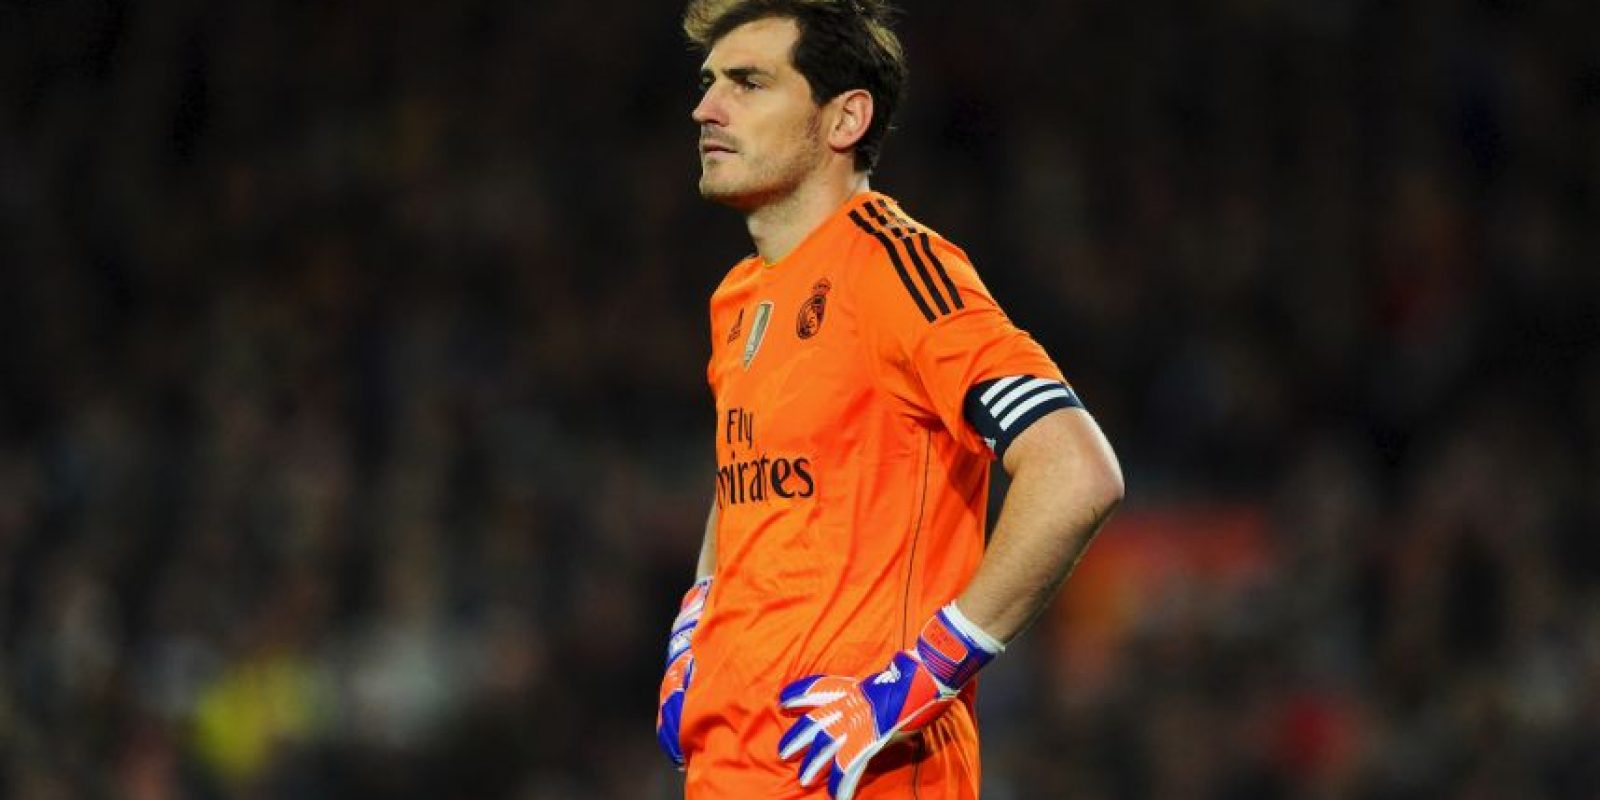 4. Iker Casillas: 7.5 millones de euros. Foto: Getty Images